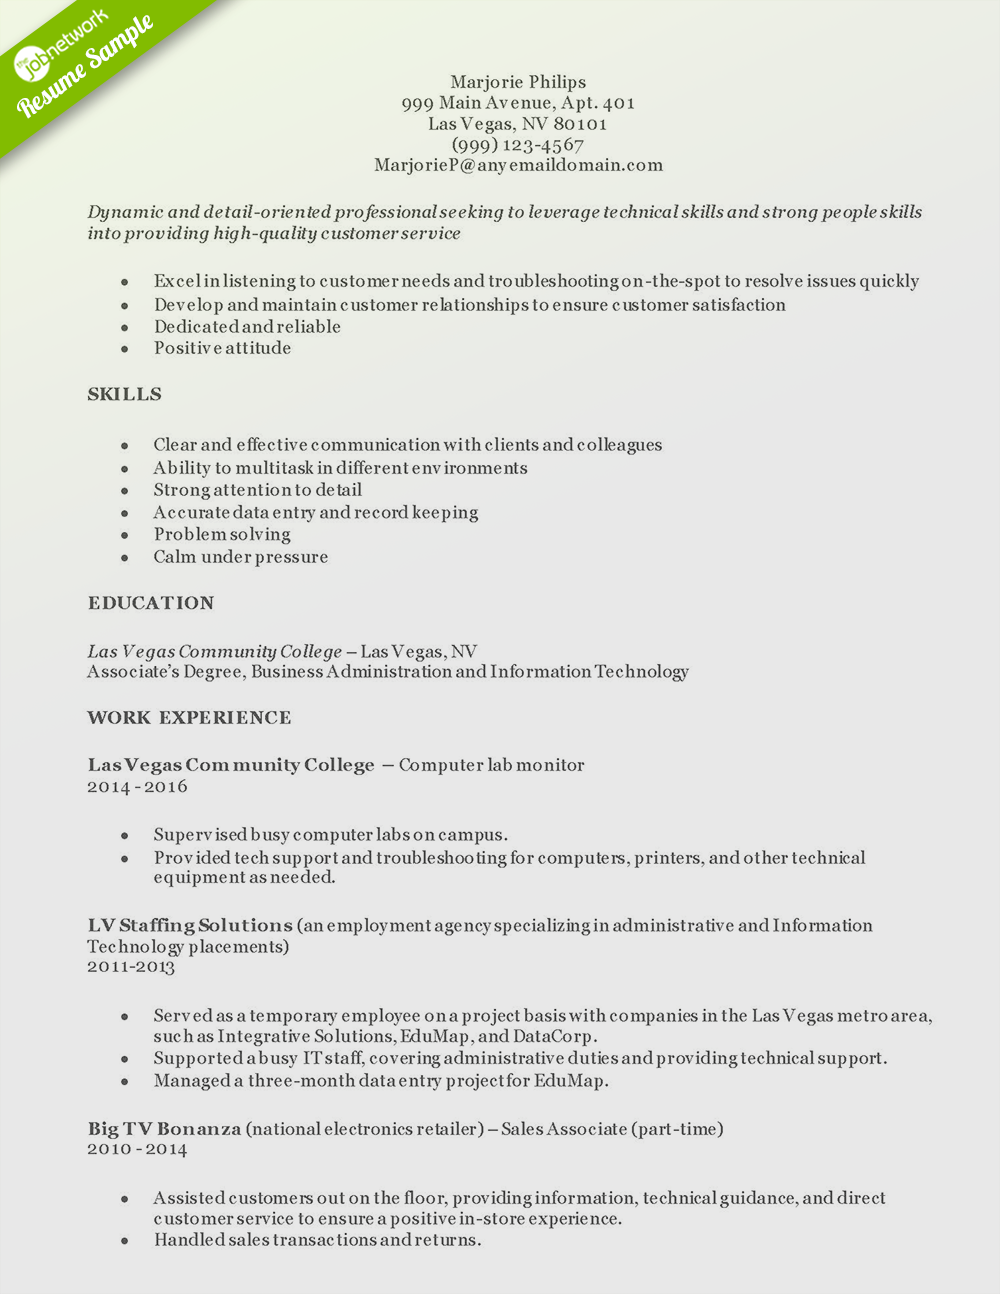 Different Resume Templates | How To Craft A Perfect Customer Service Resume Using Examples